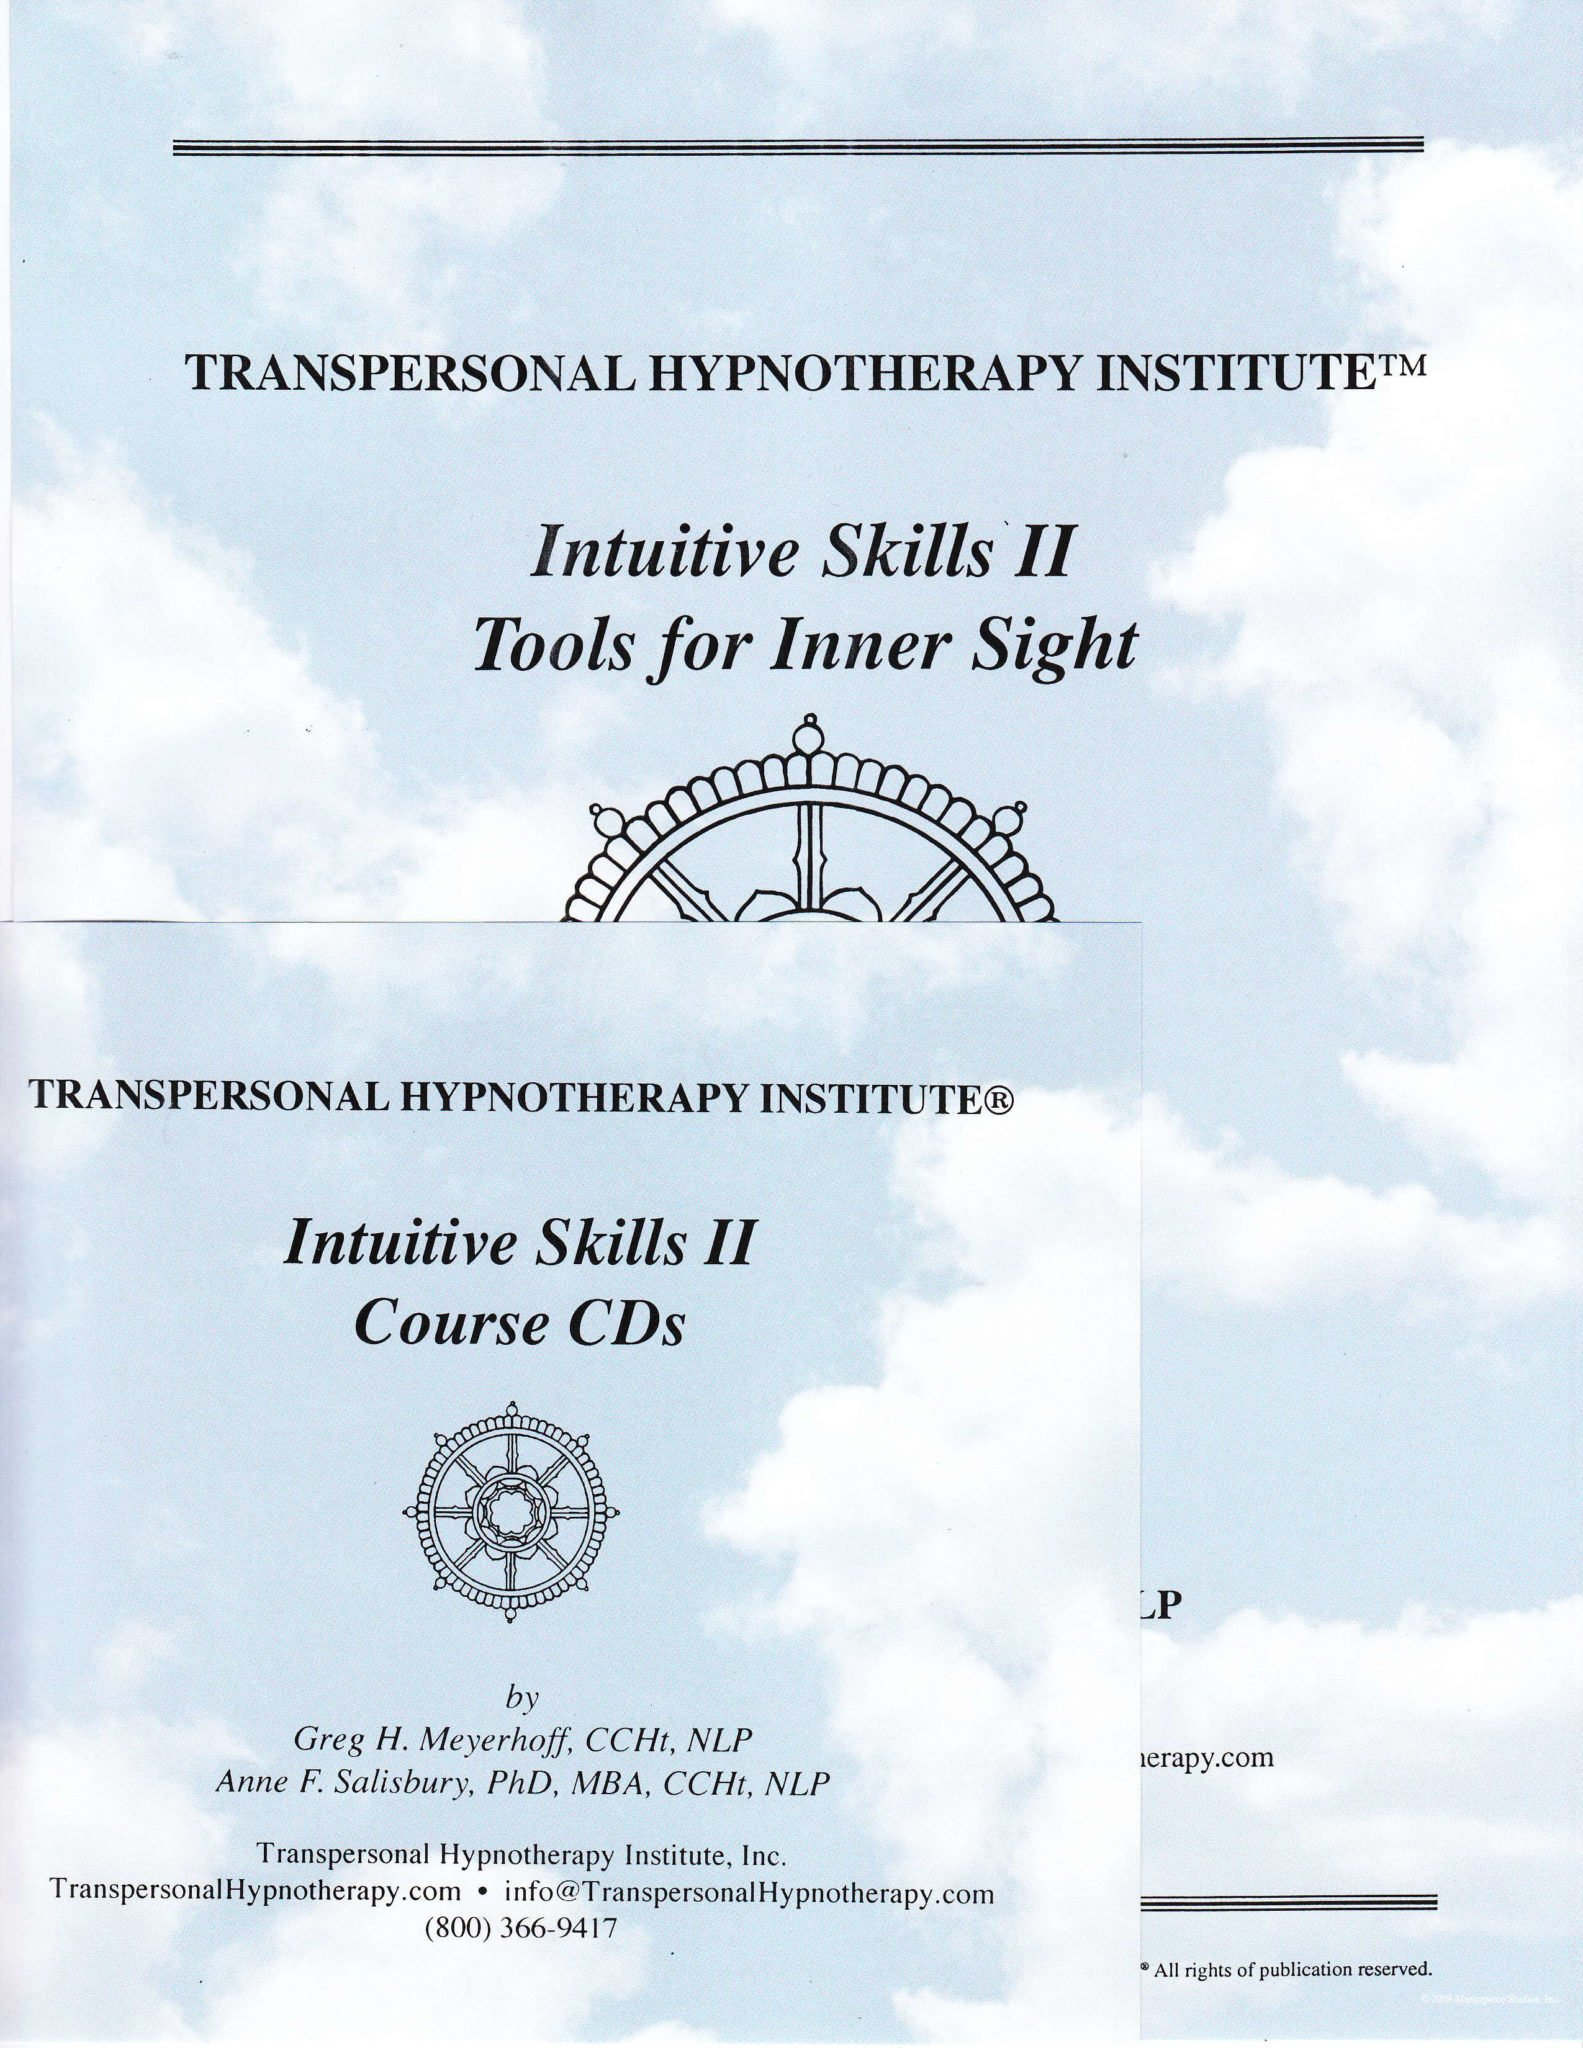 Intuitive Skills 2 Tools For Inner Sight Course